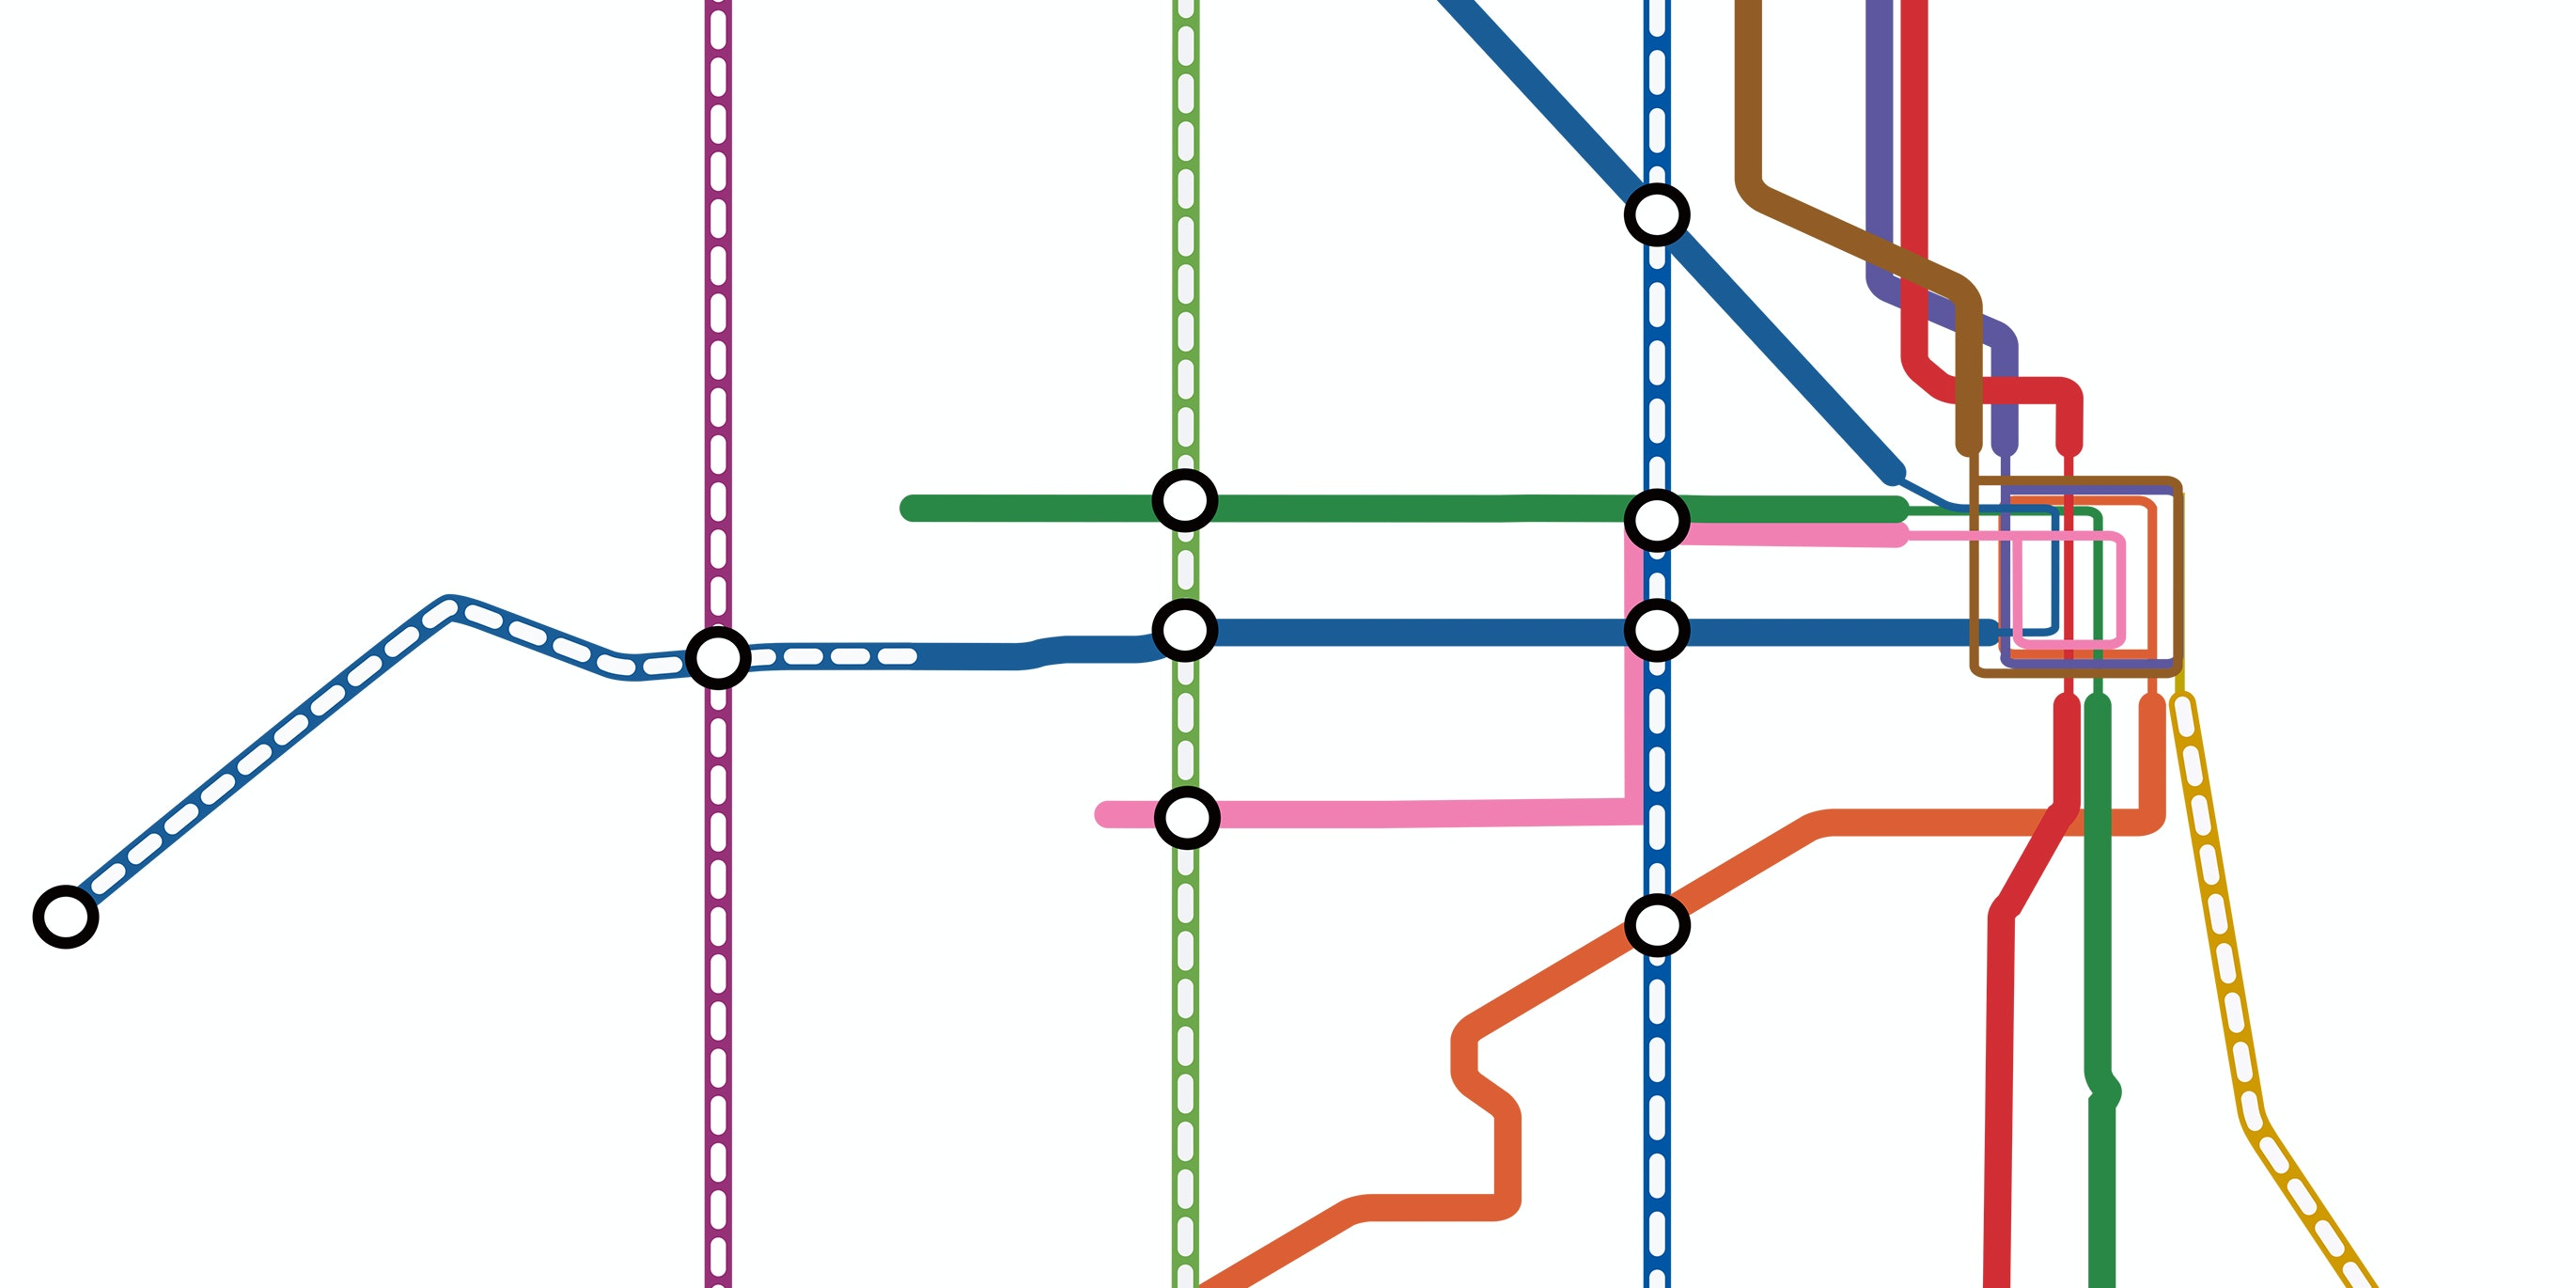 Redline Metro Map Los Angeles.This Map Shows What Chicago S Future Metro Could Look Like Inverse